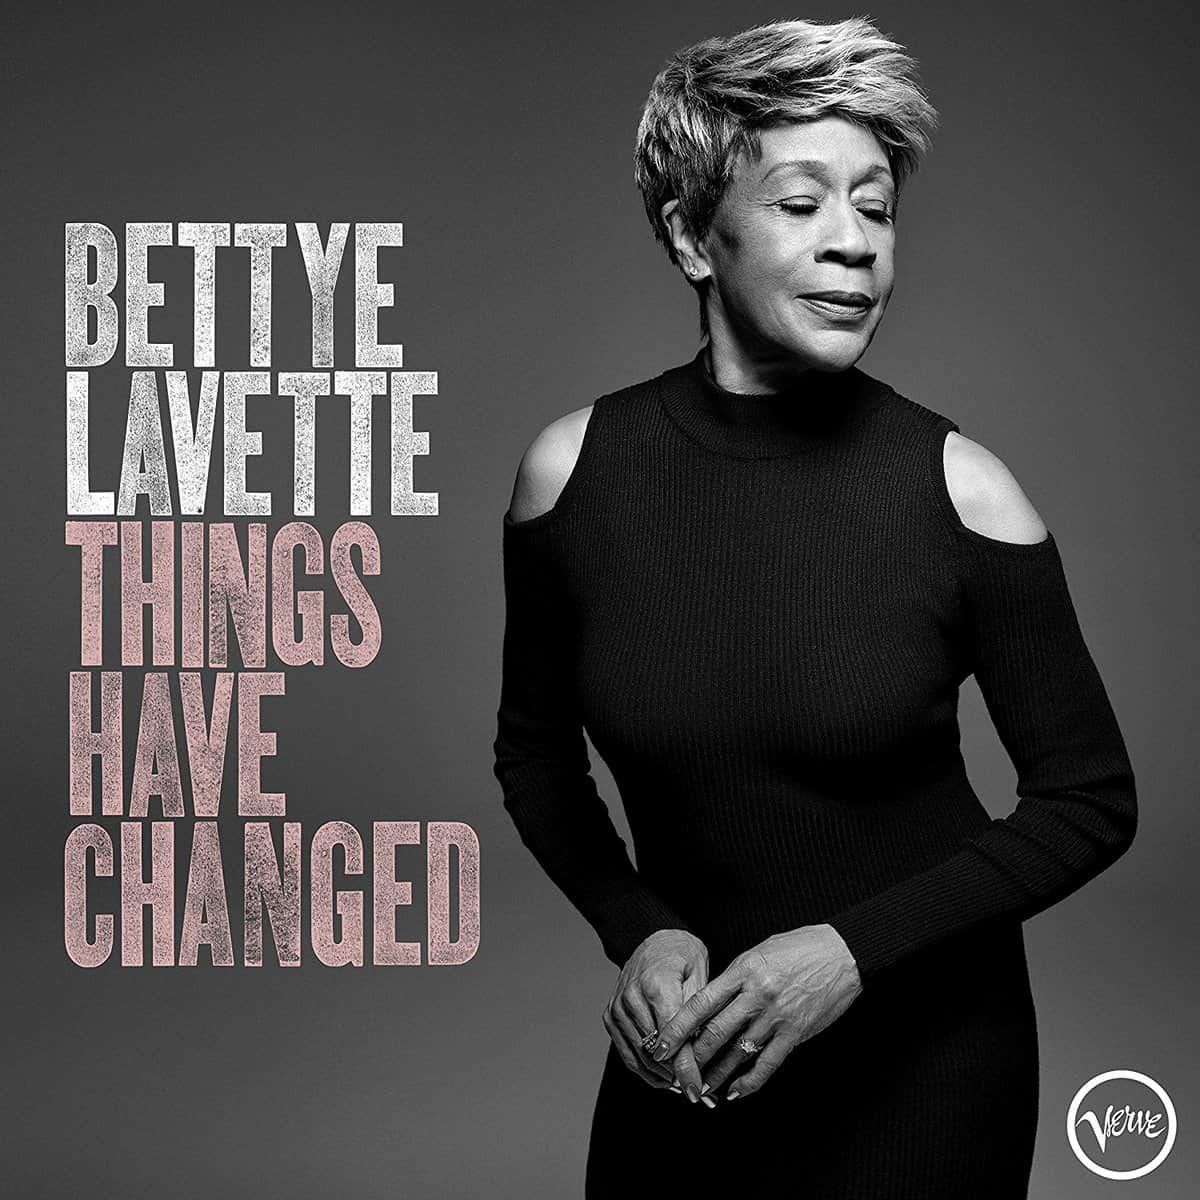 Bettye-LaVette-Things-Have-Changed